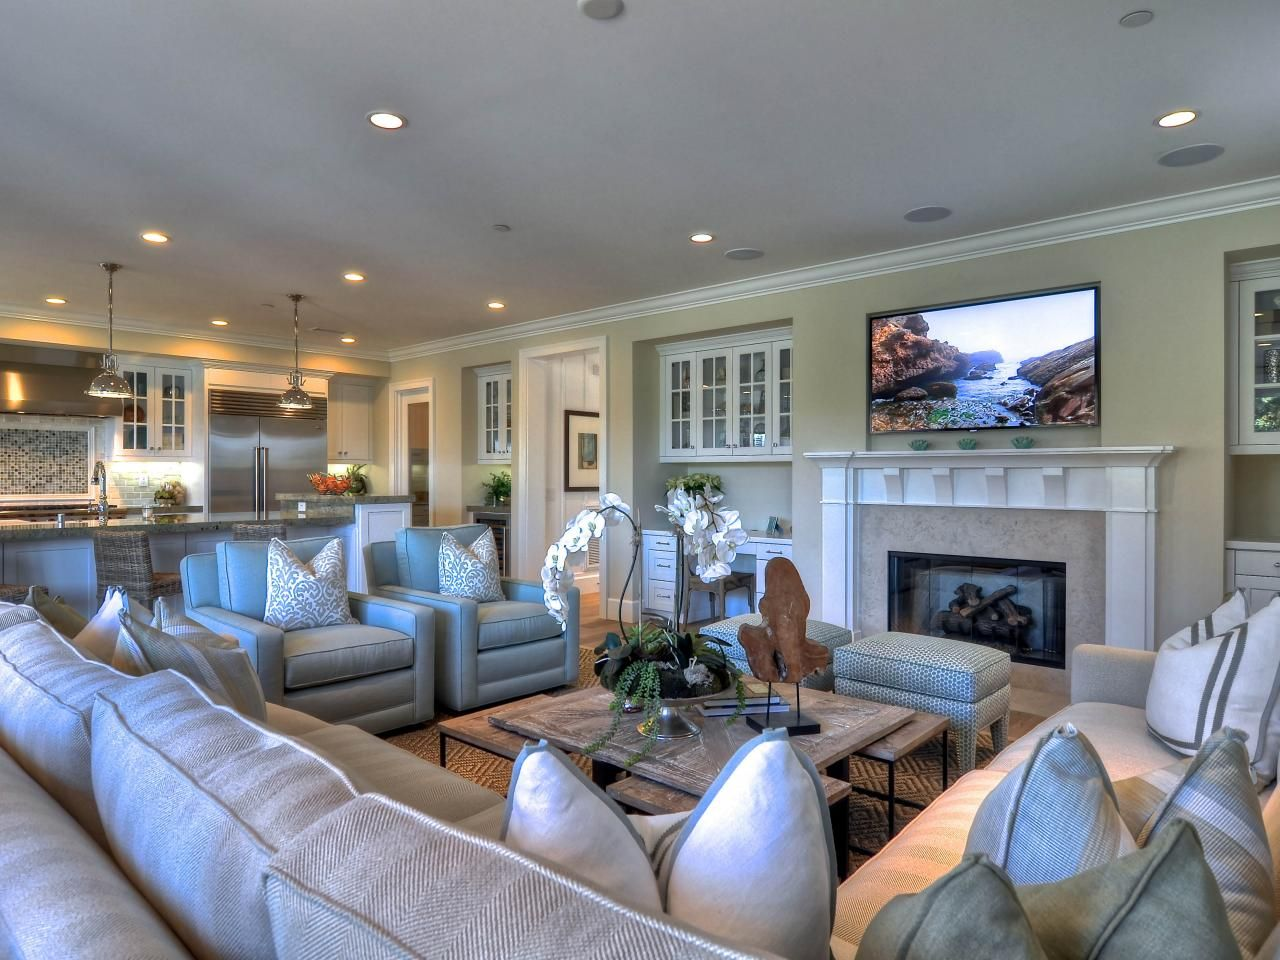 Coastal Decor Is Found In The Details In This Spacious Family Room Upholstered Light Sea Blue